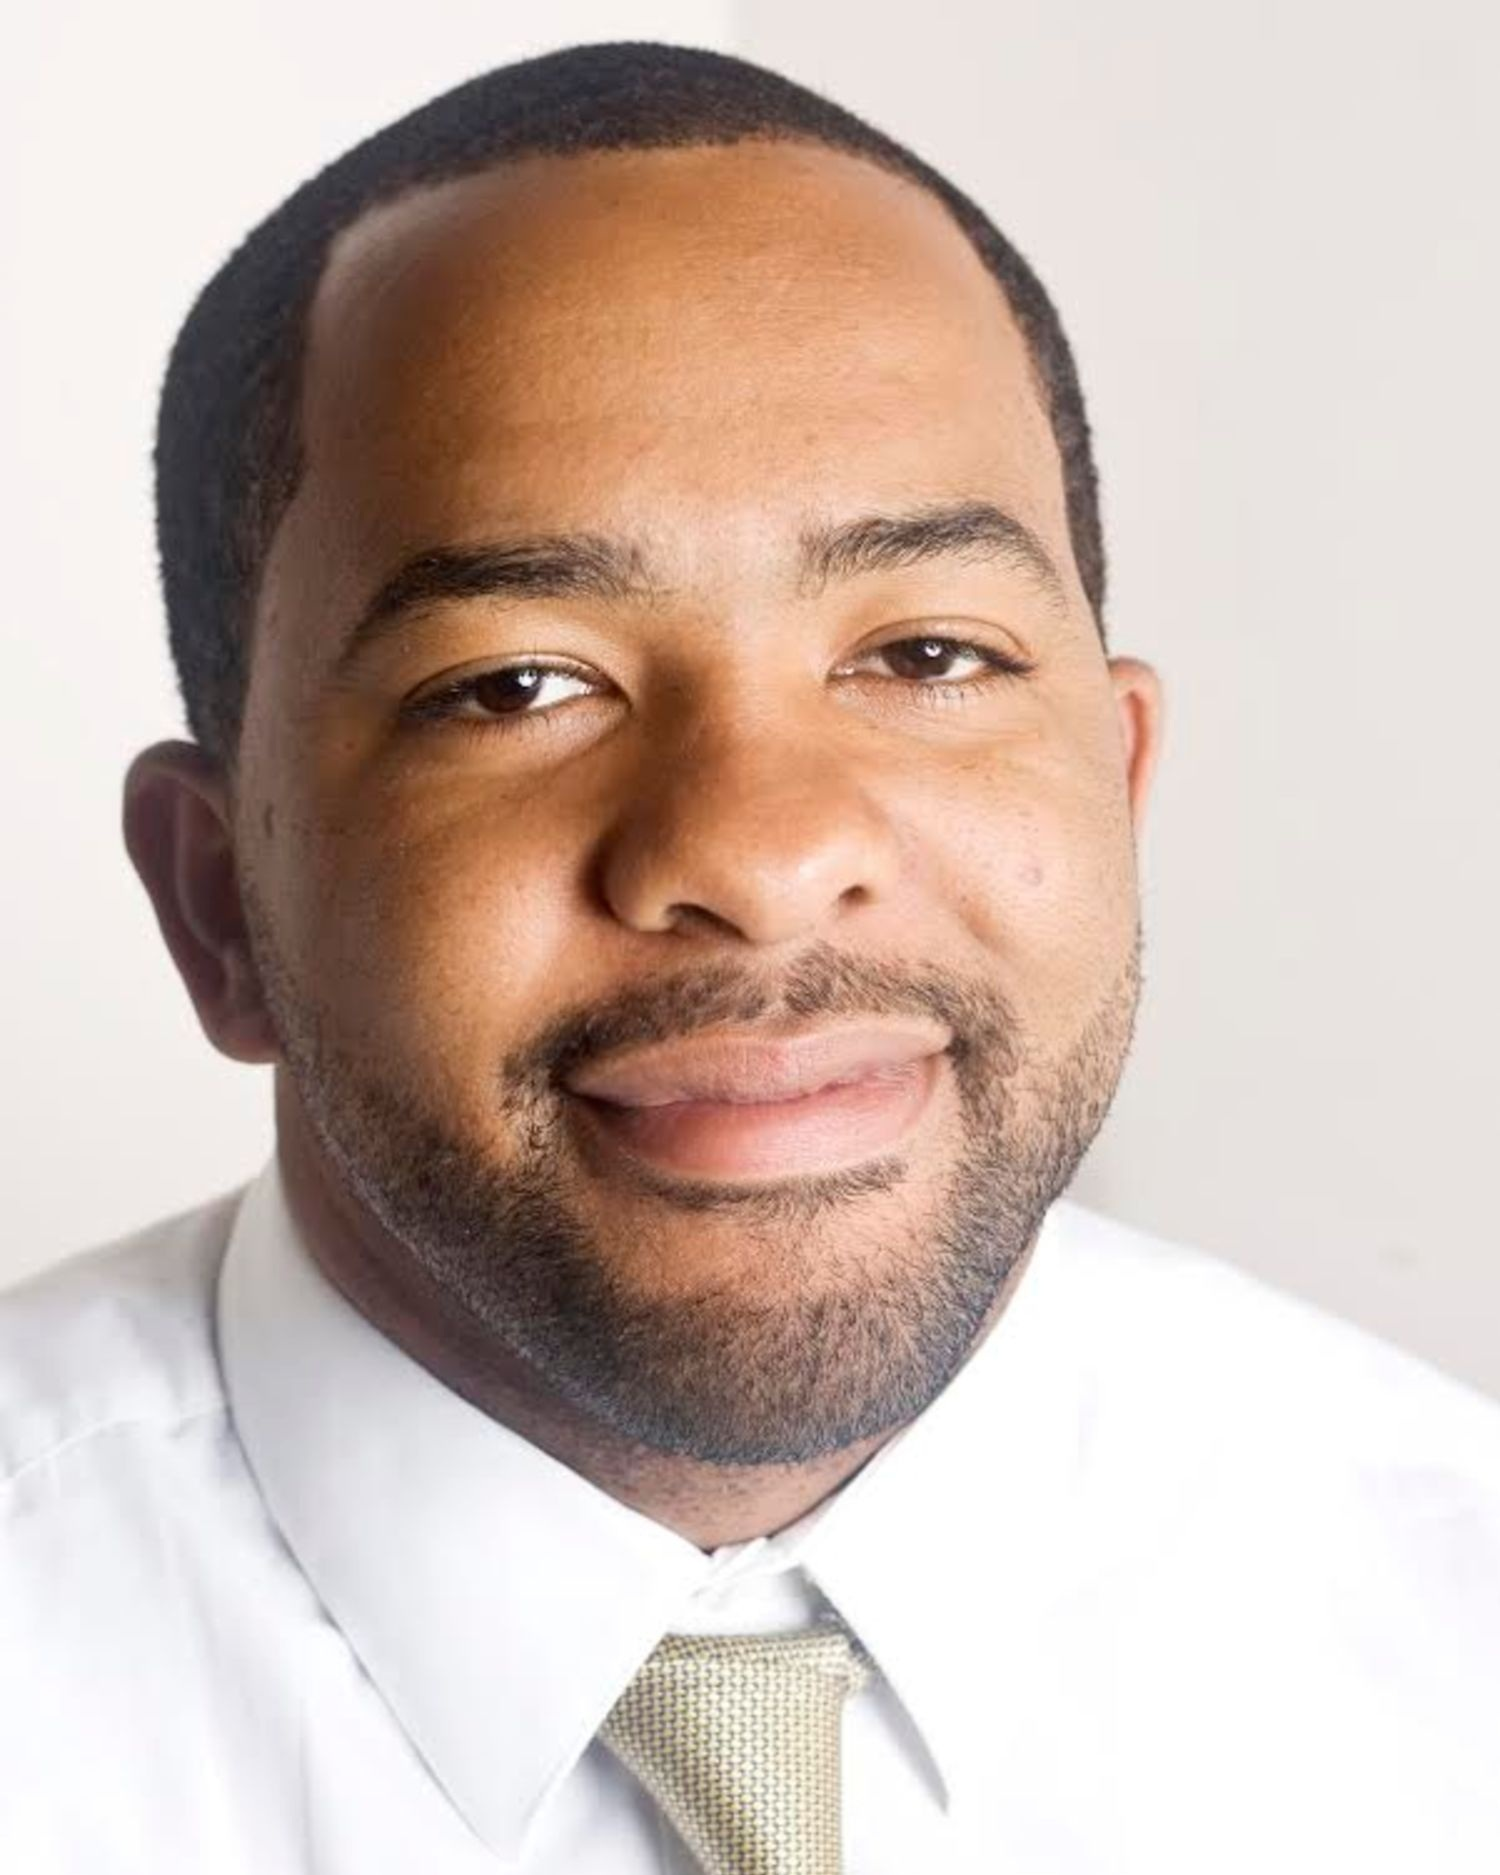 Aquil Crooks - I was born and raised in Bridgeport, and still live there currently.My primary goal is to end gun violence in the community, a mission I have pursued not only by being a co-founder of the Justice Advisors, but through my work with two other local programs: Street Safe and Project Longevity.